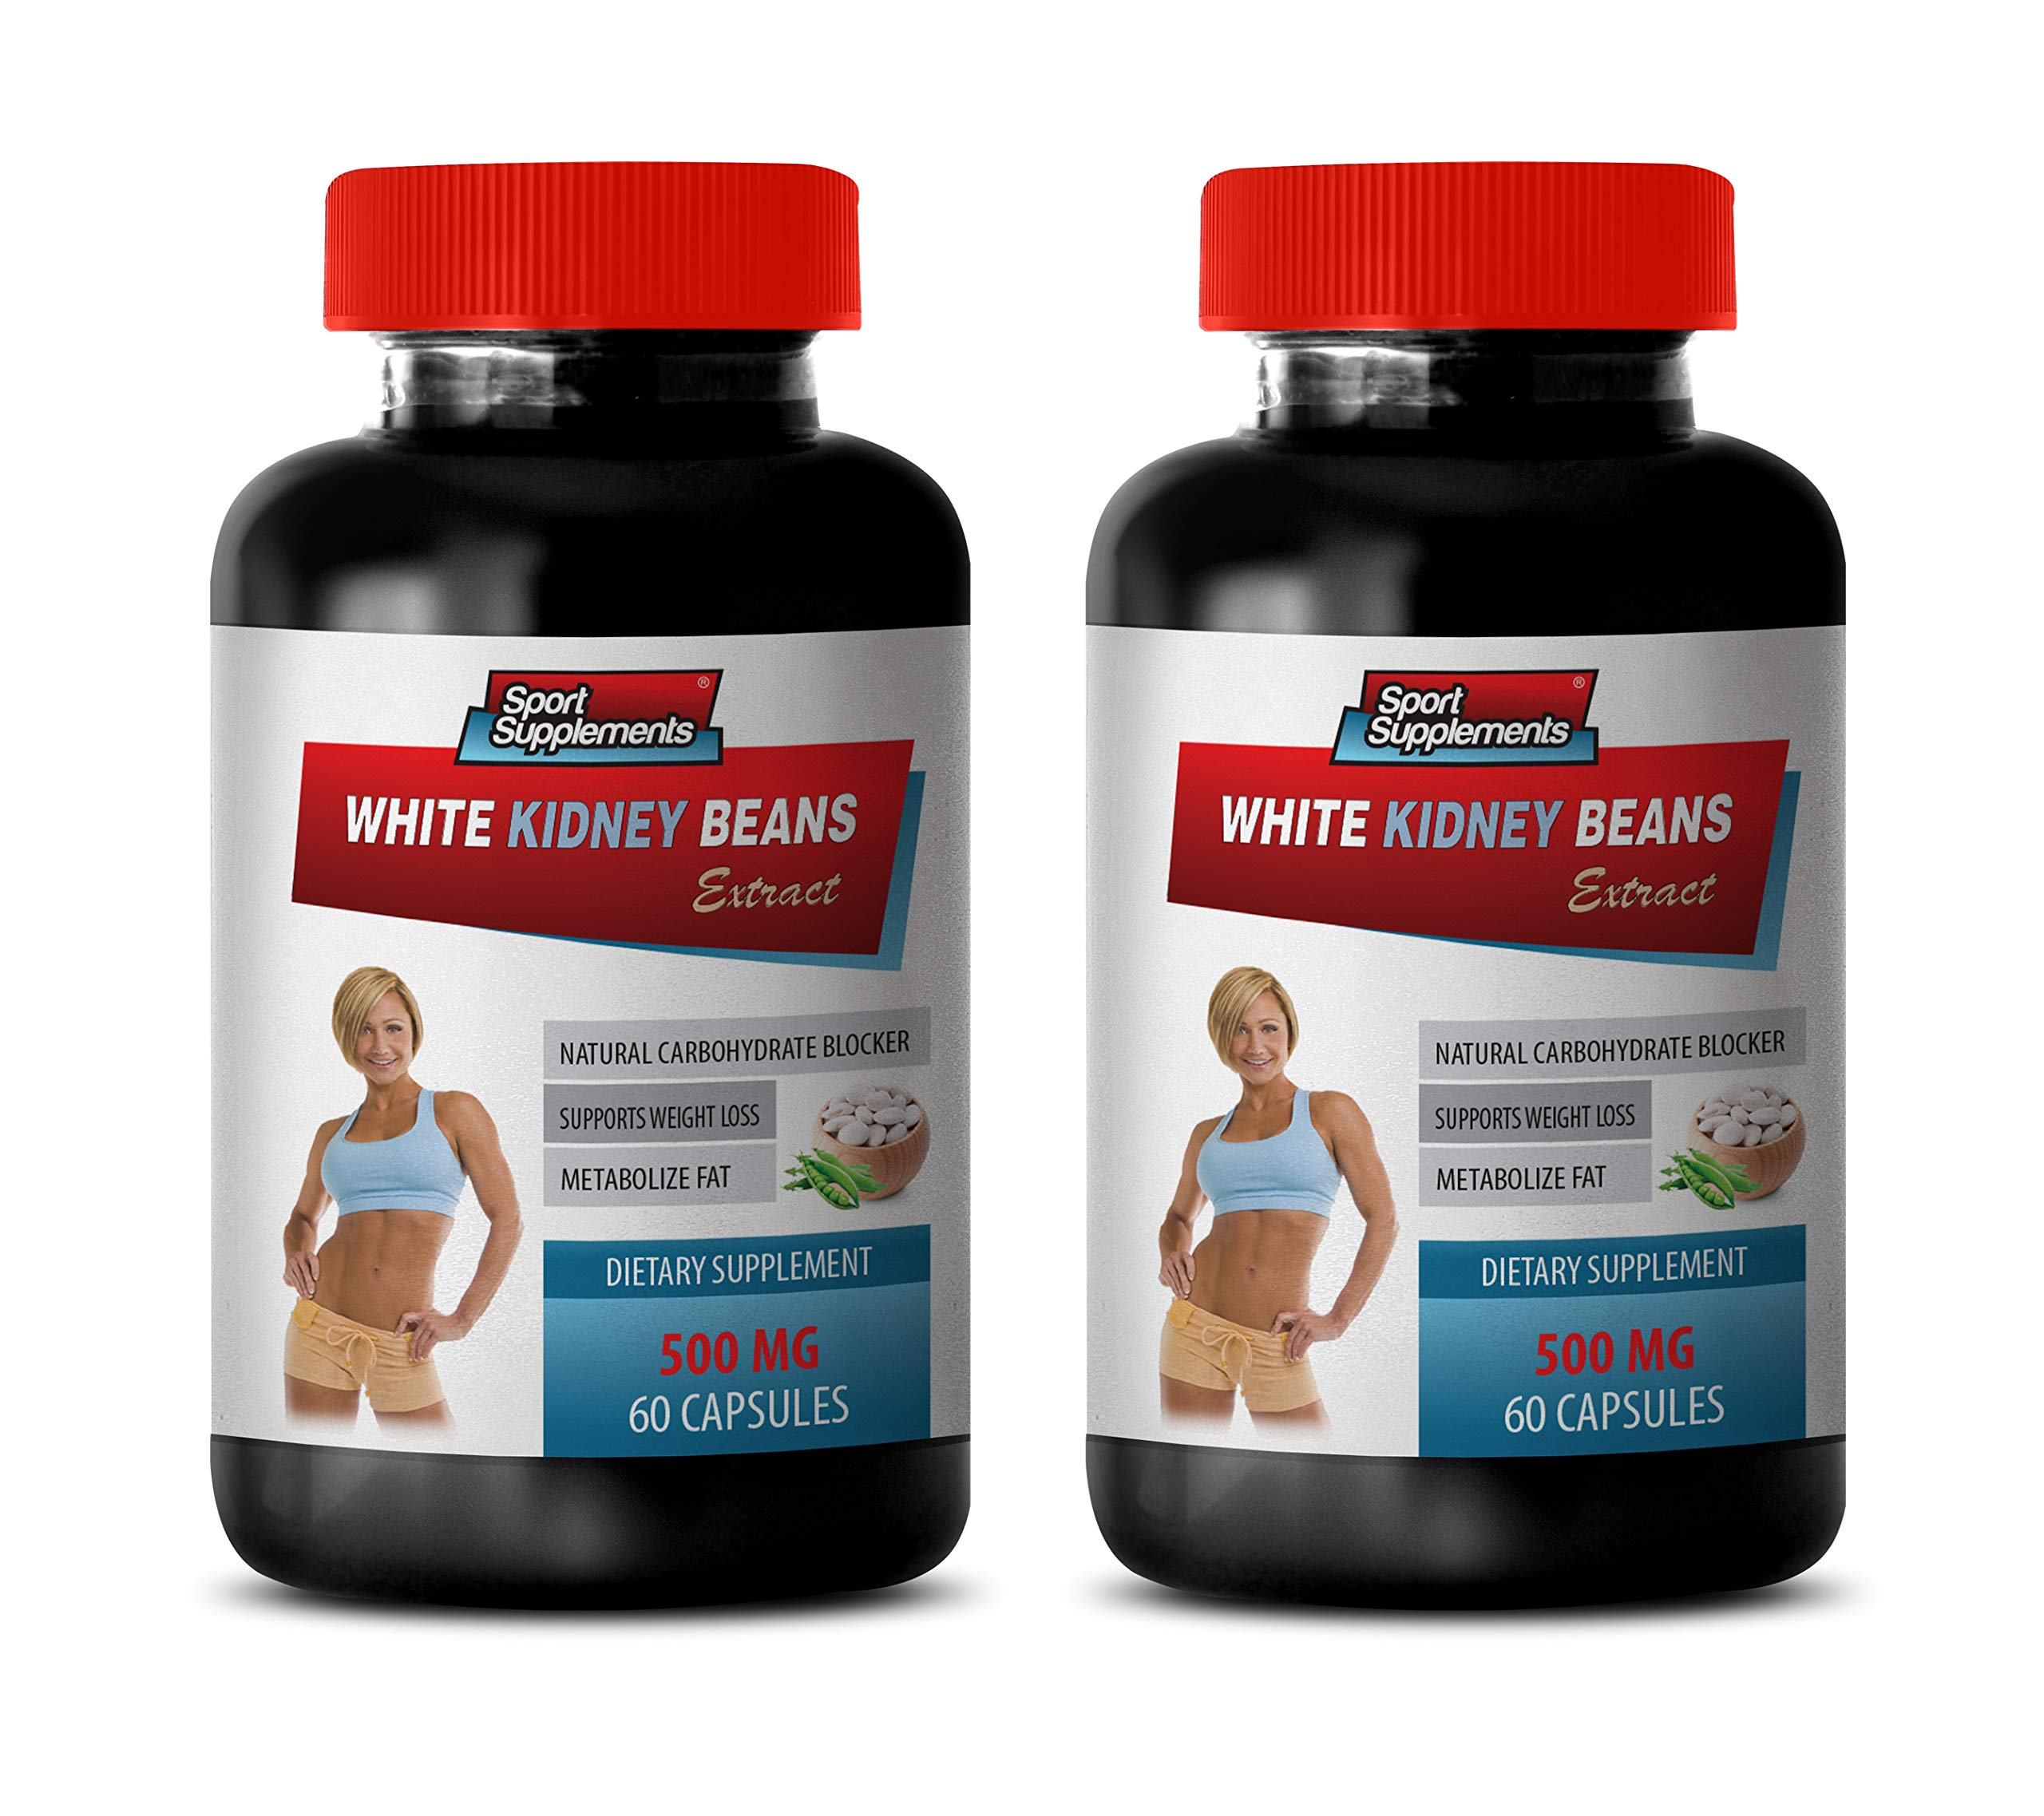 carb blockers Weight Loss for Women - White Kidney Beans Extract - Dietary Supplements - Weight Loss Pills Without Exercise - 2 Bottles (120 Capsules)